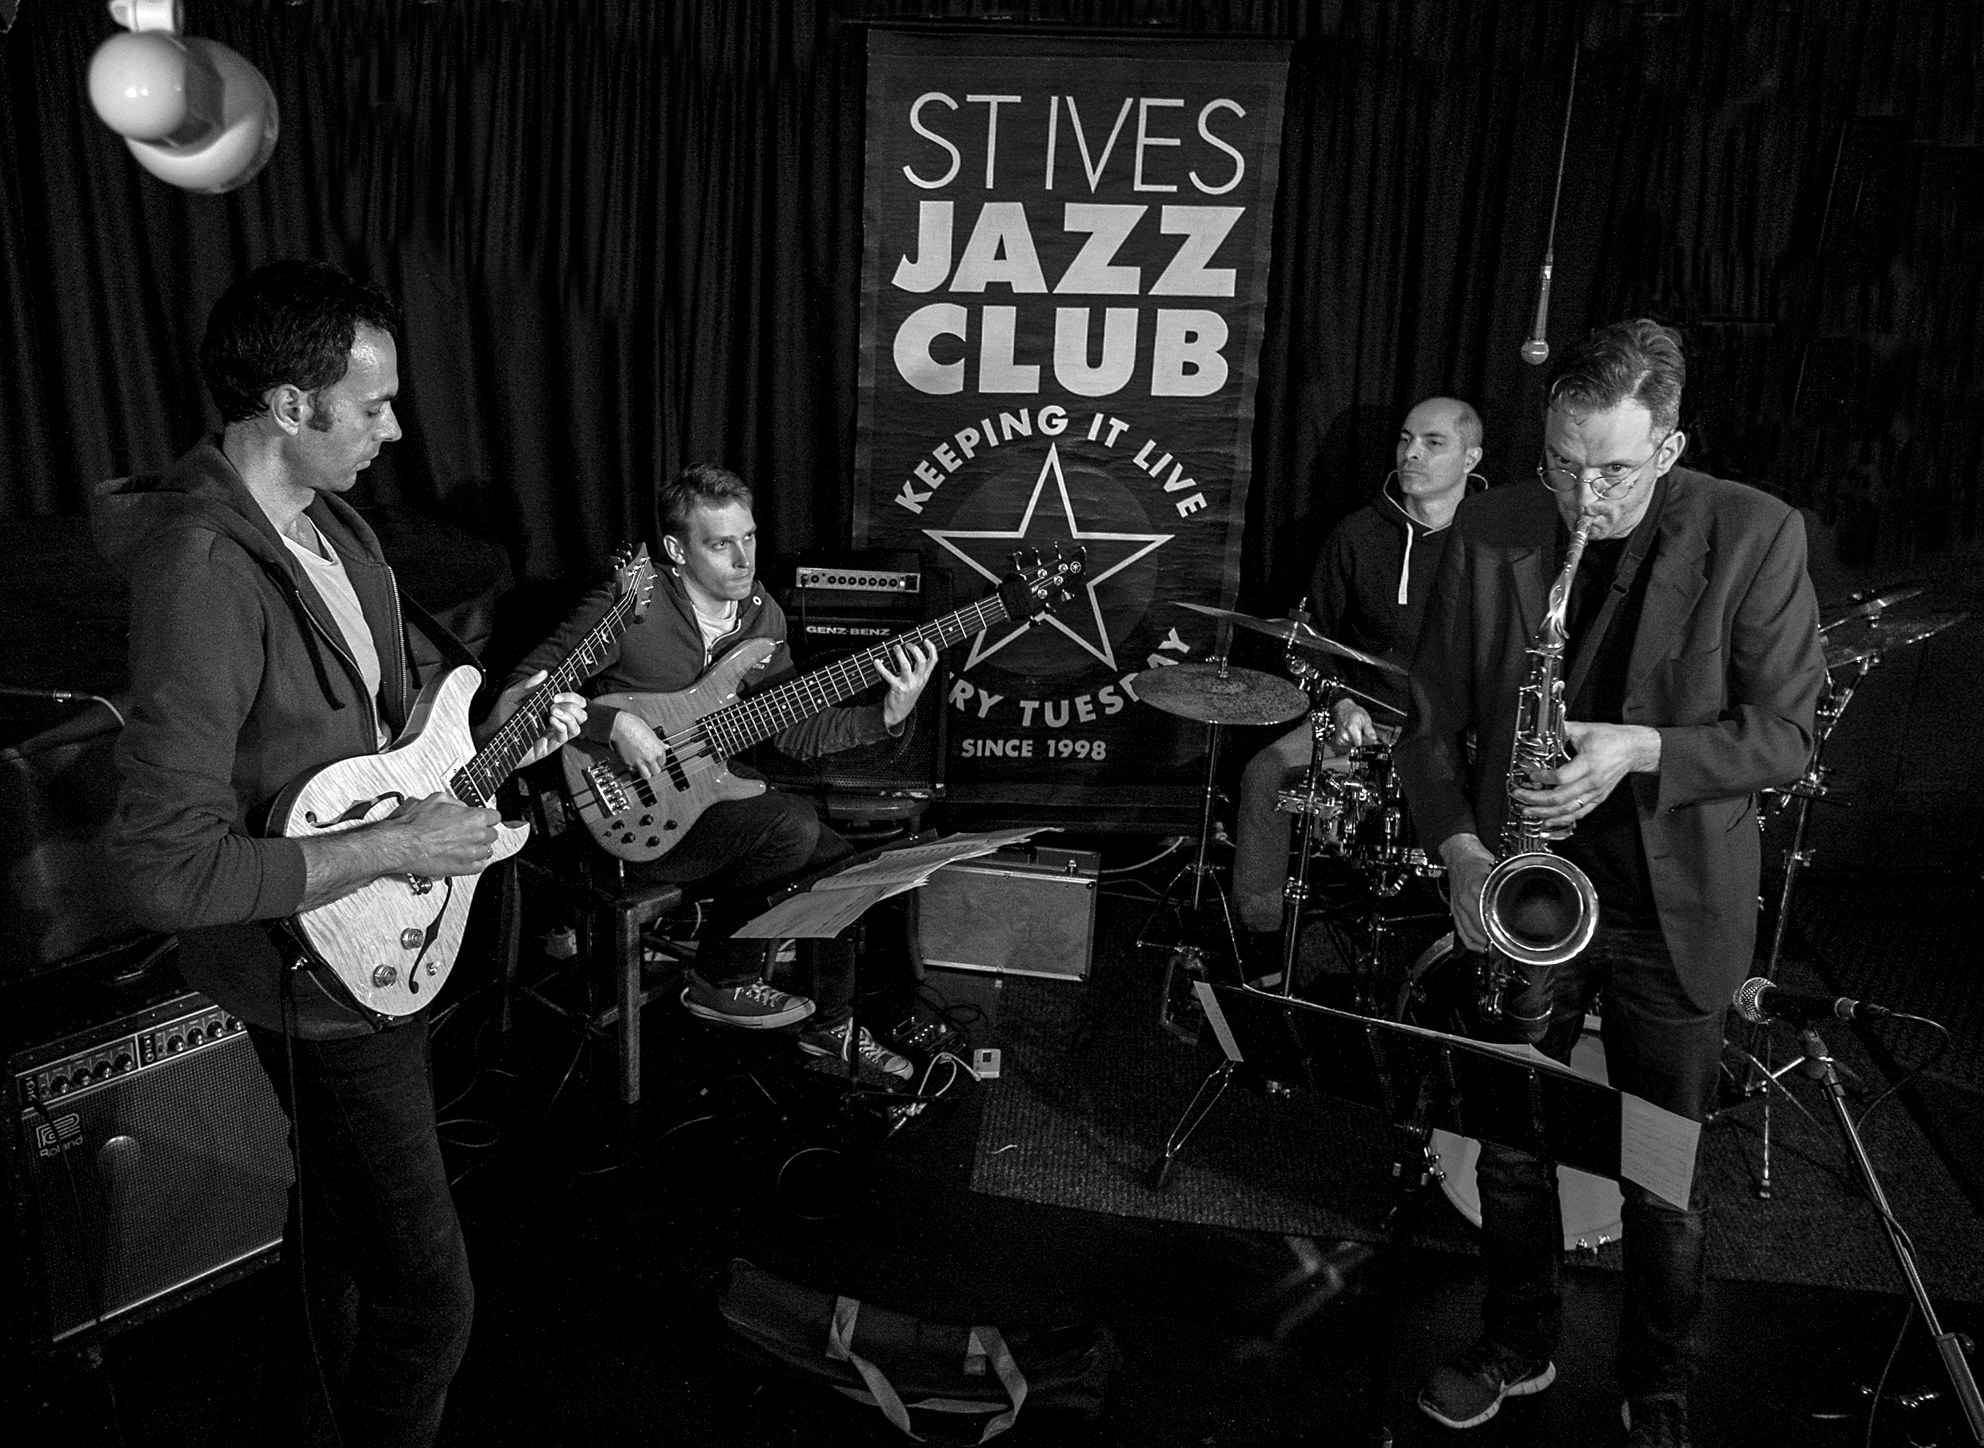 Photo by Tony Brown @ St.Ives Jazz Club